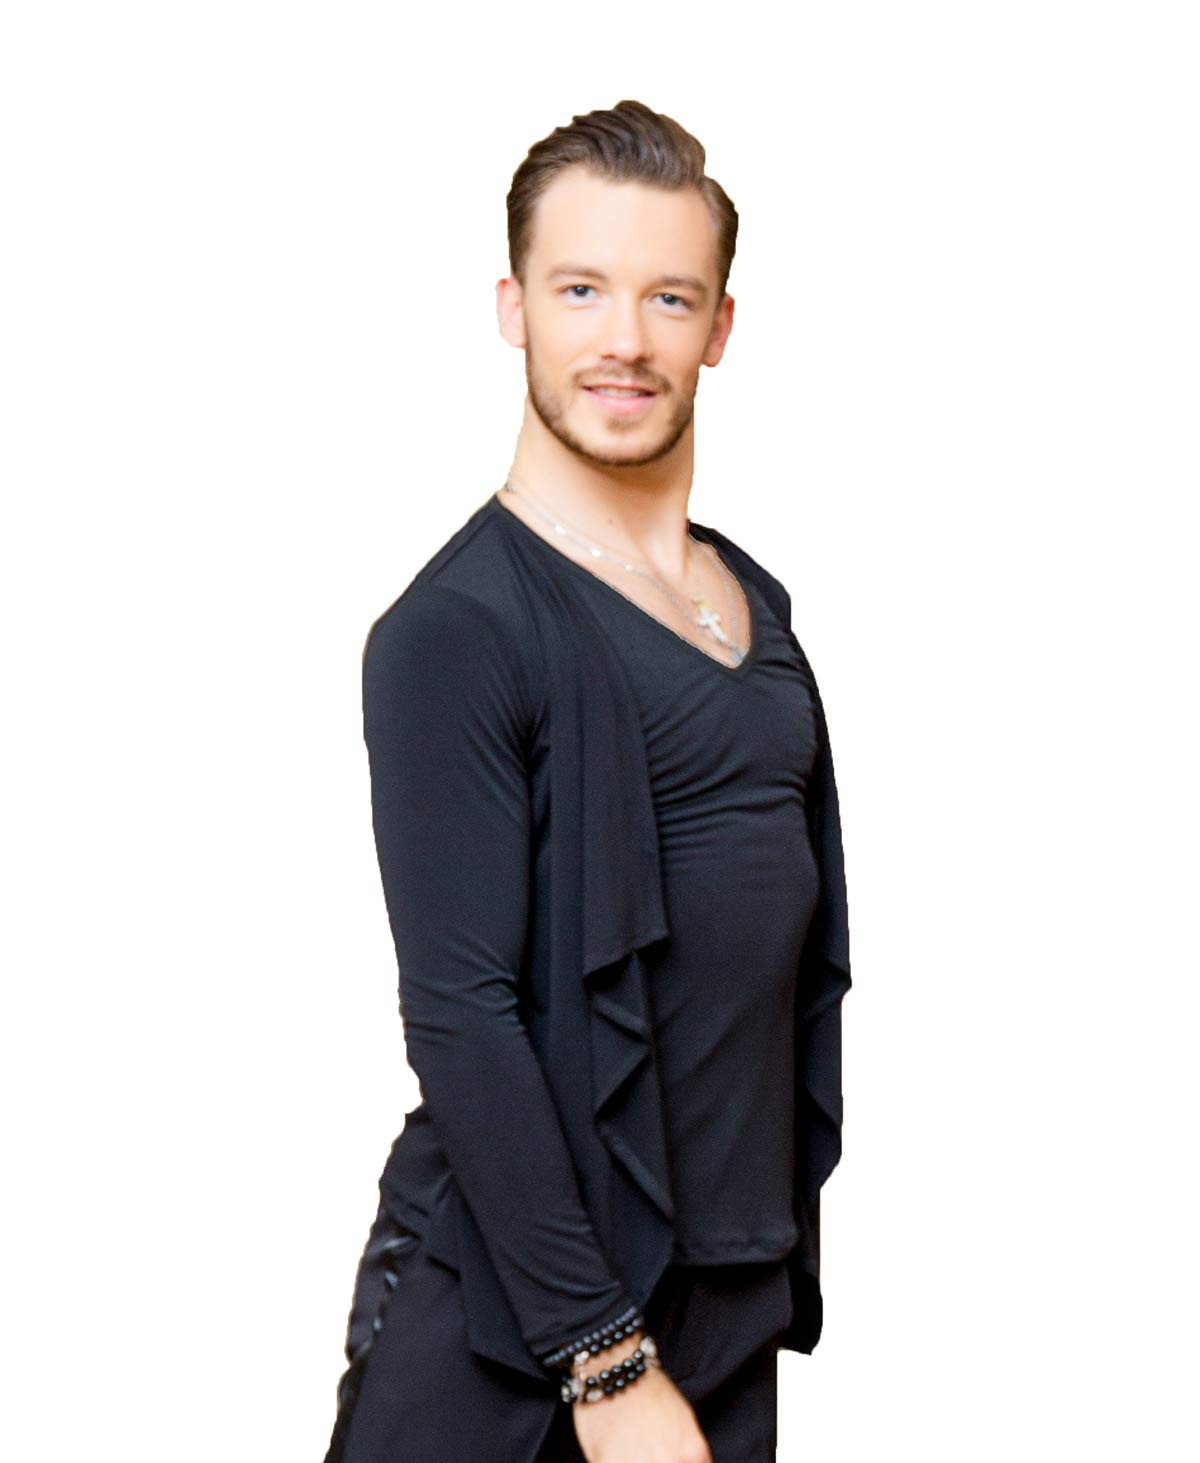 SuperStar Series:G5012 latin ballroom dance professional simulated two-piece design tops/shirt for men ((SBS) black, M) by SCGGINTTANZ